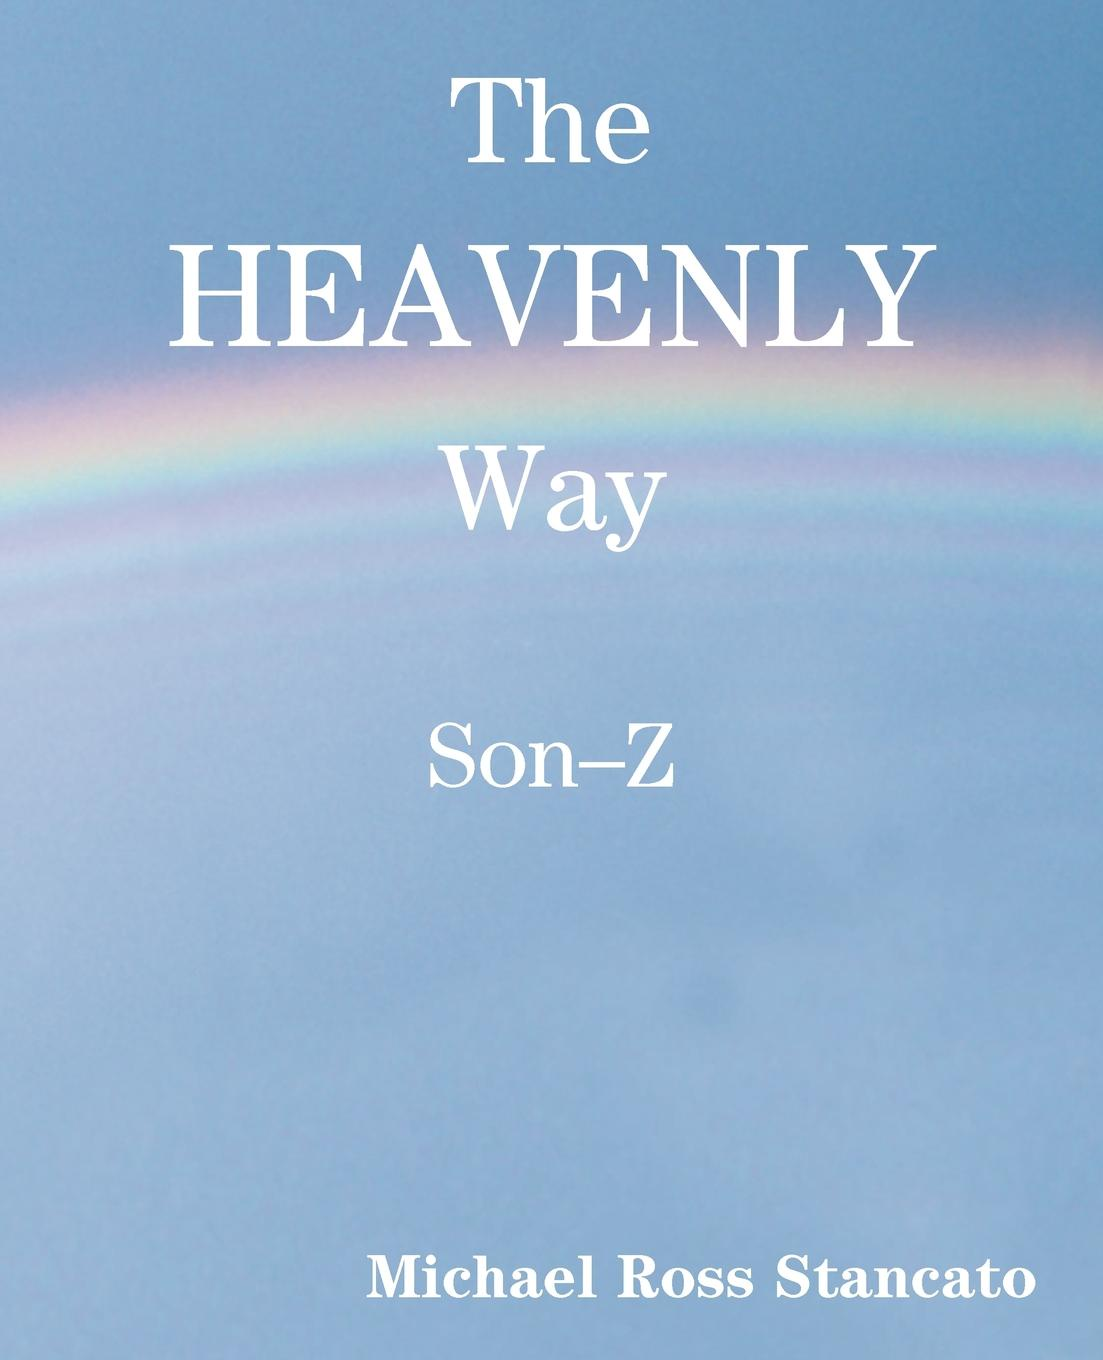 The Heavenly Way Son-Z the son